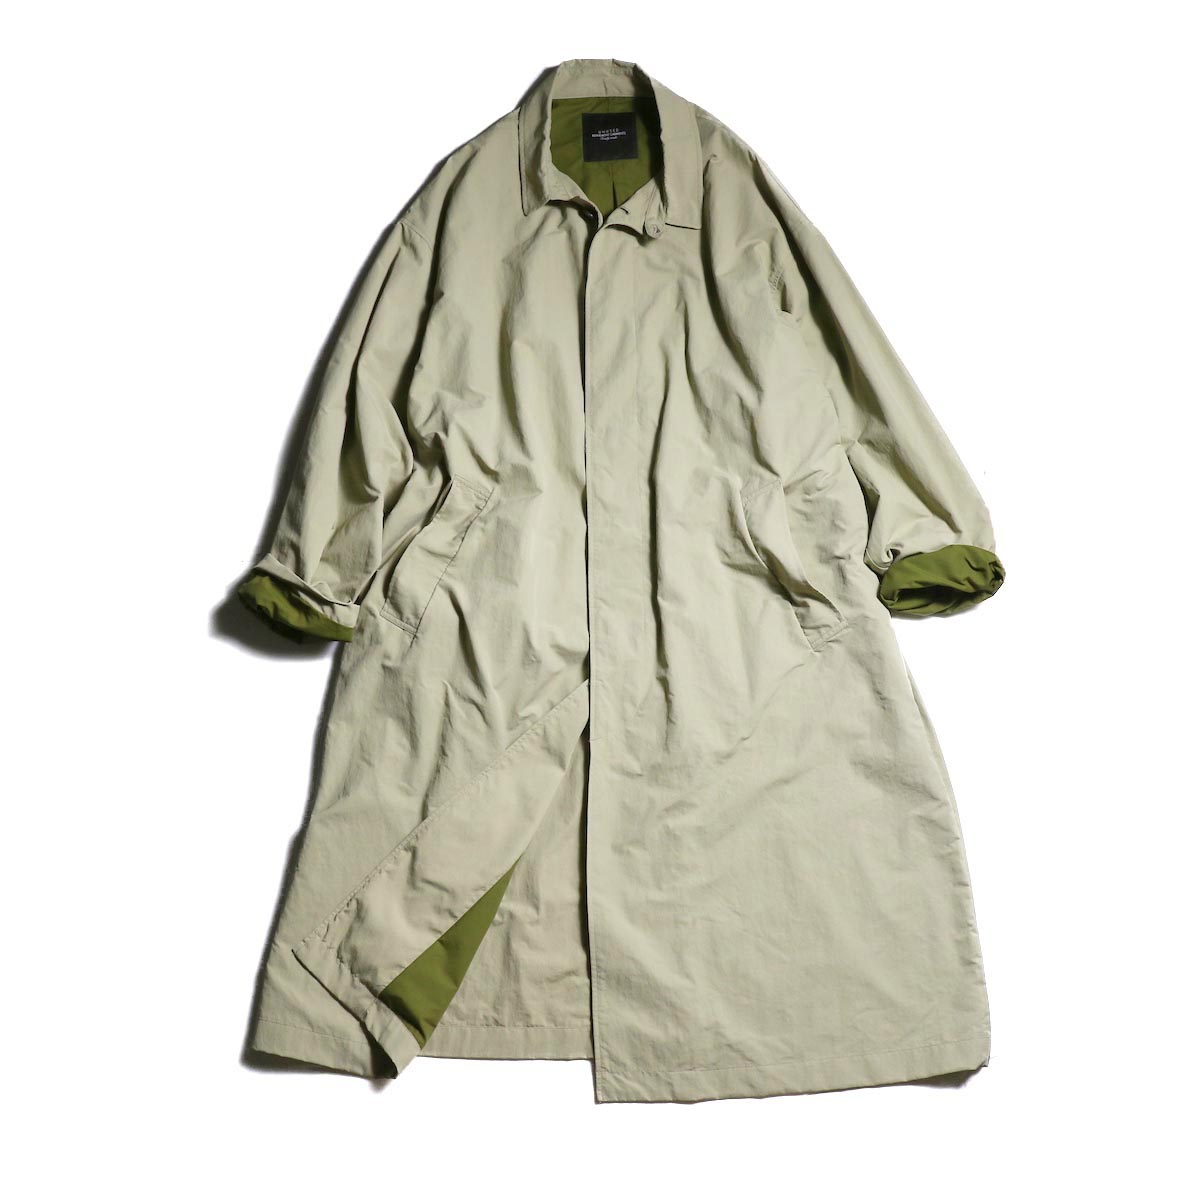 UNUSED / US1670 Nylon Coat. (Beige)